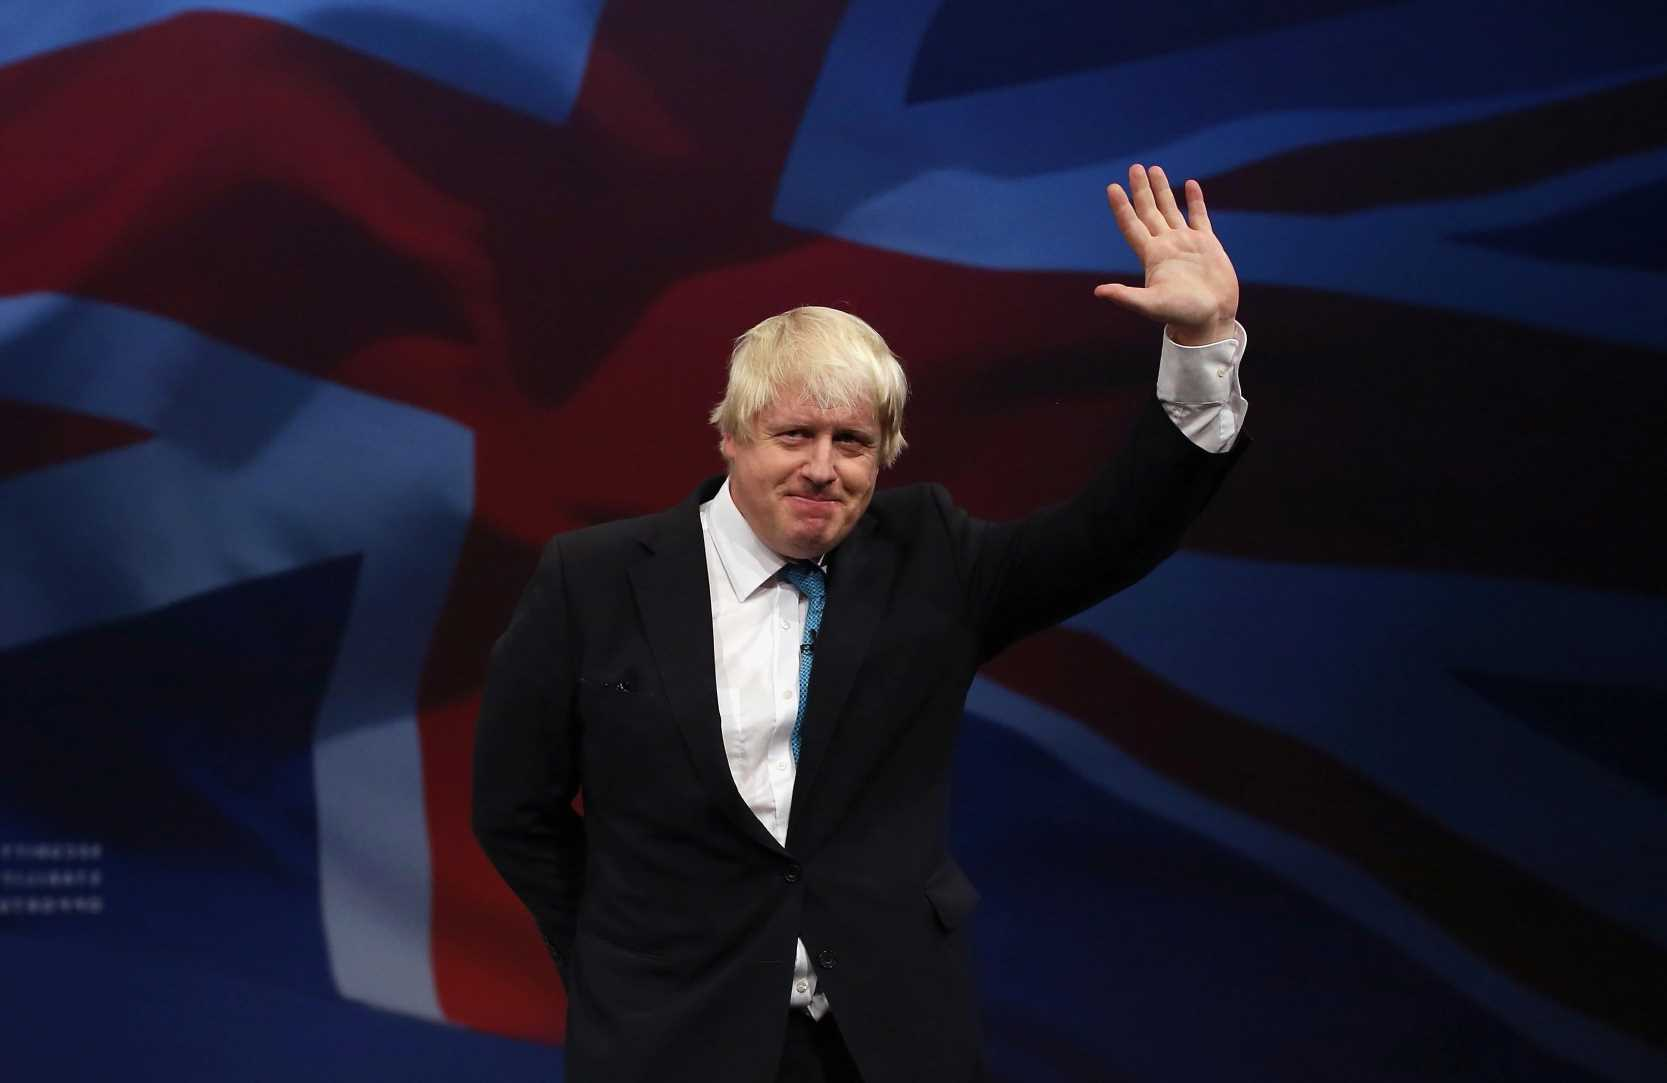 Boris Johnson hopes to be PM for another decade & go on